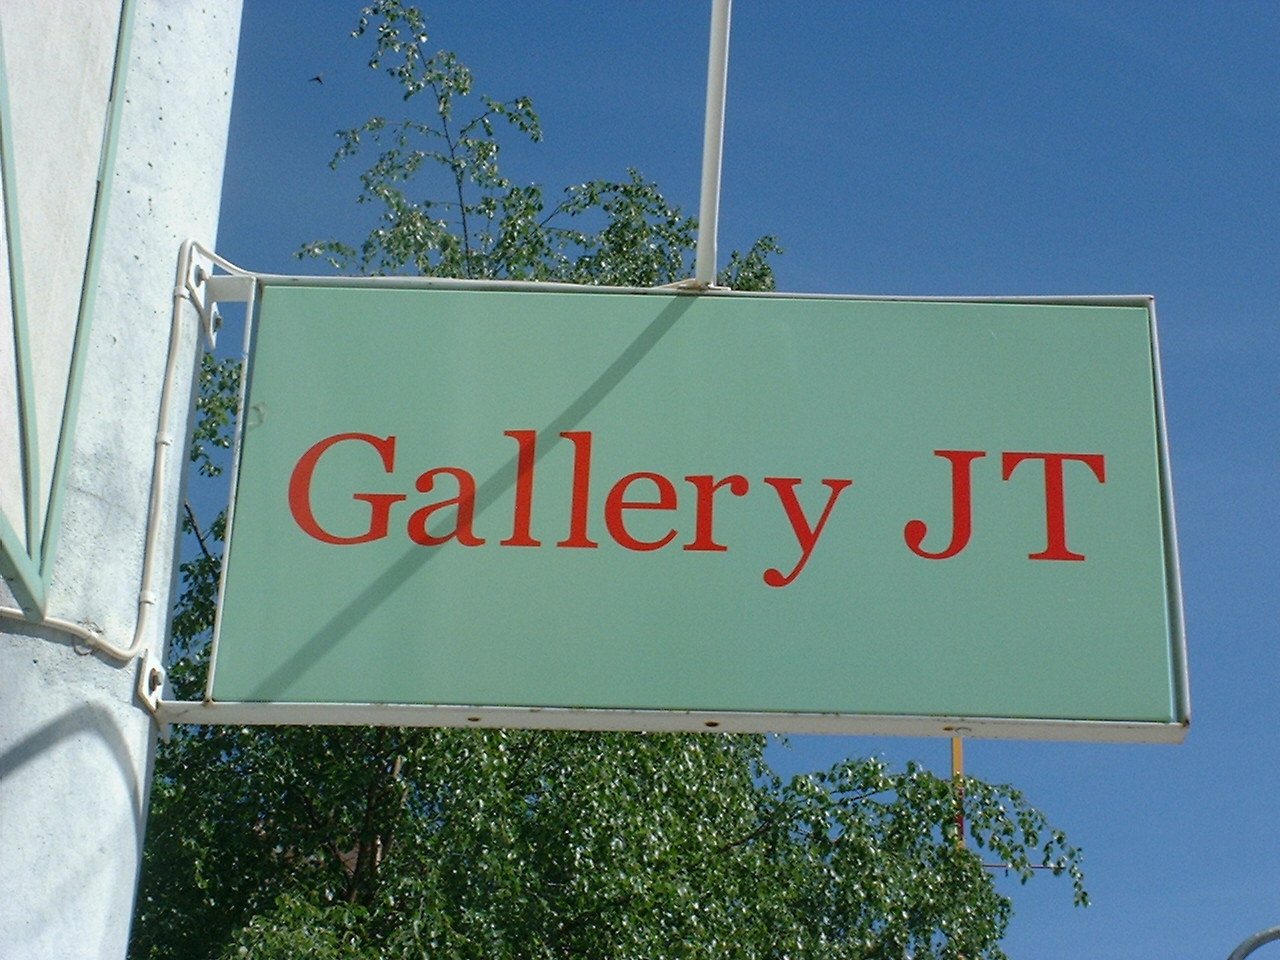 1. Gallery JT AB art price butik länk.